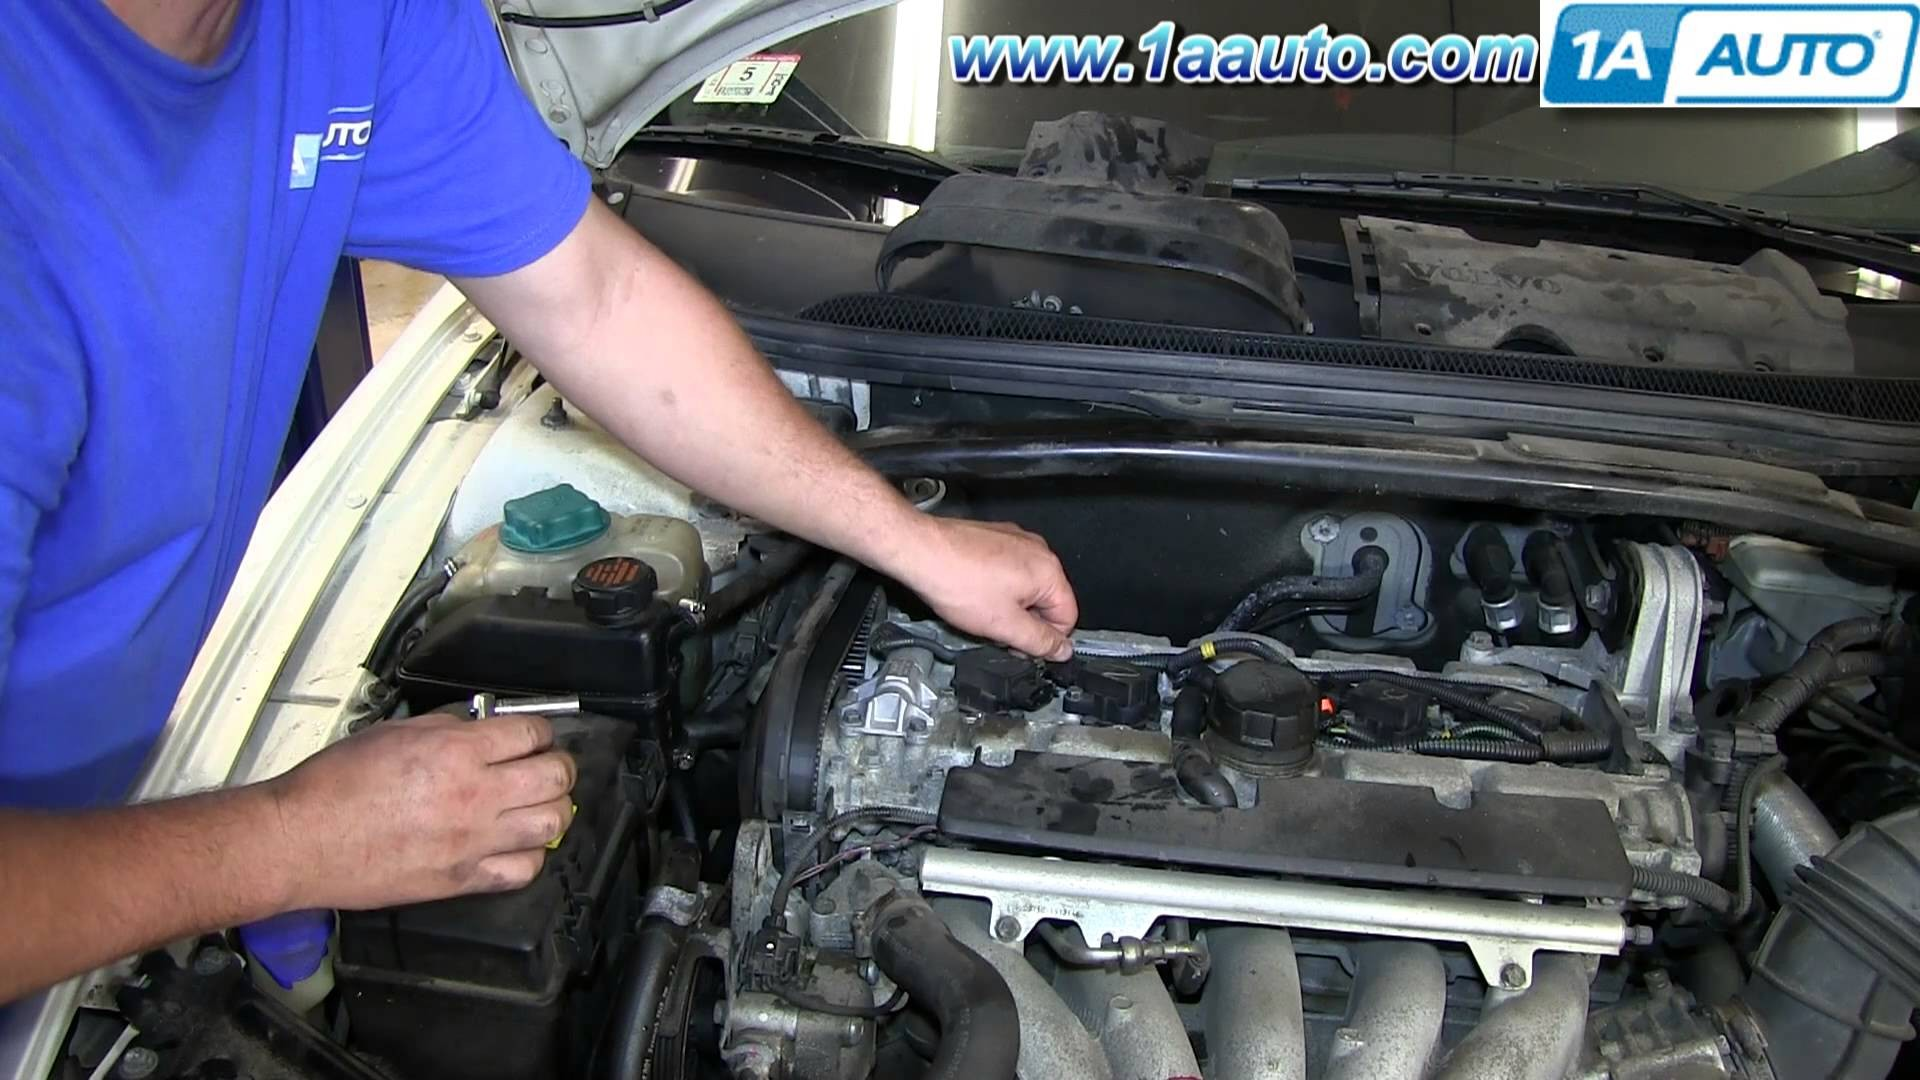 2001 Volvo S80 Engine Diagram How to Install Replace Engine Ignition Coil 1999 2007 Volvo V70 Of 2001 Volvo S80 Engine Diagram